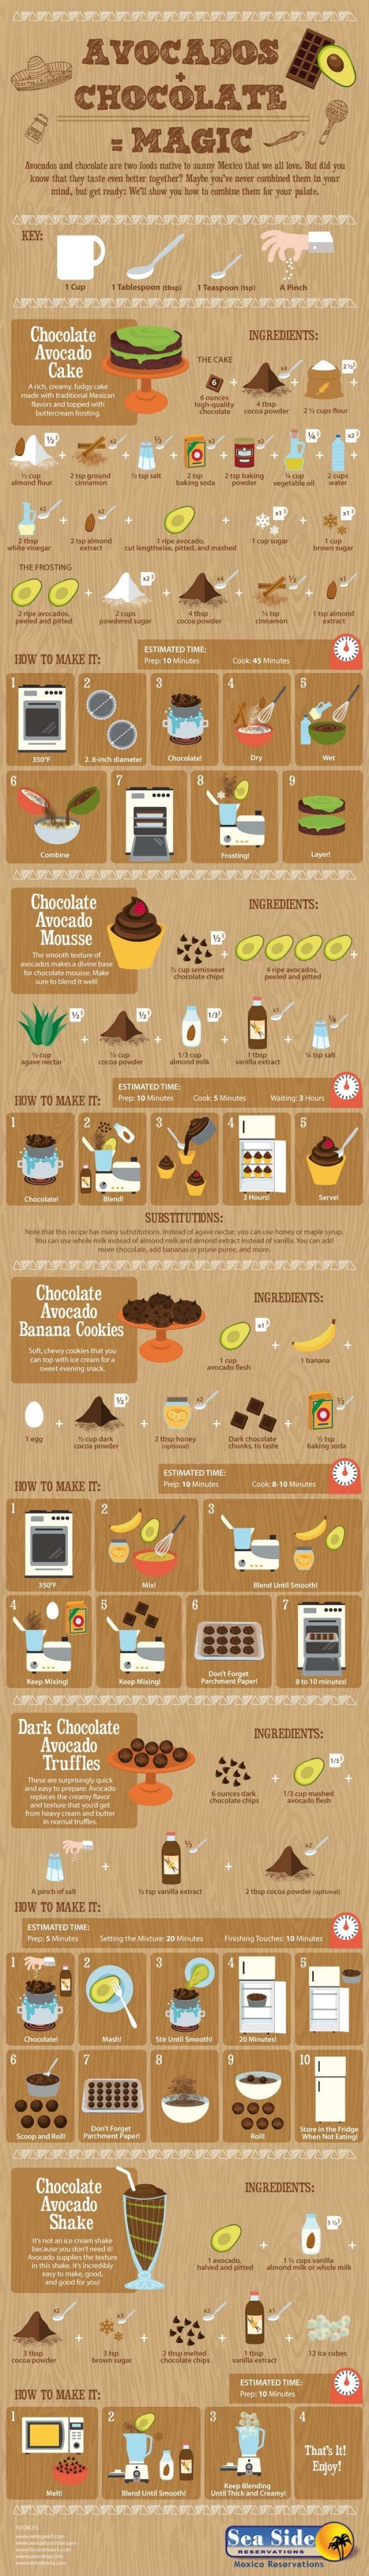 Avocados + Chocolate = Magic